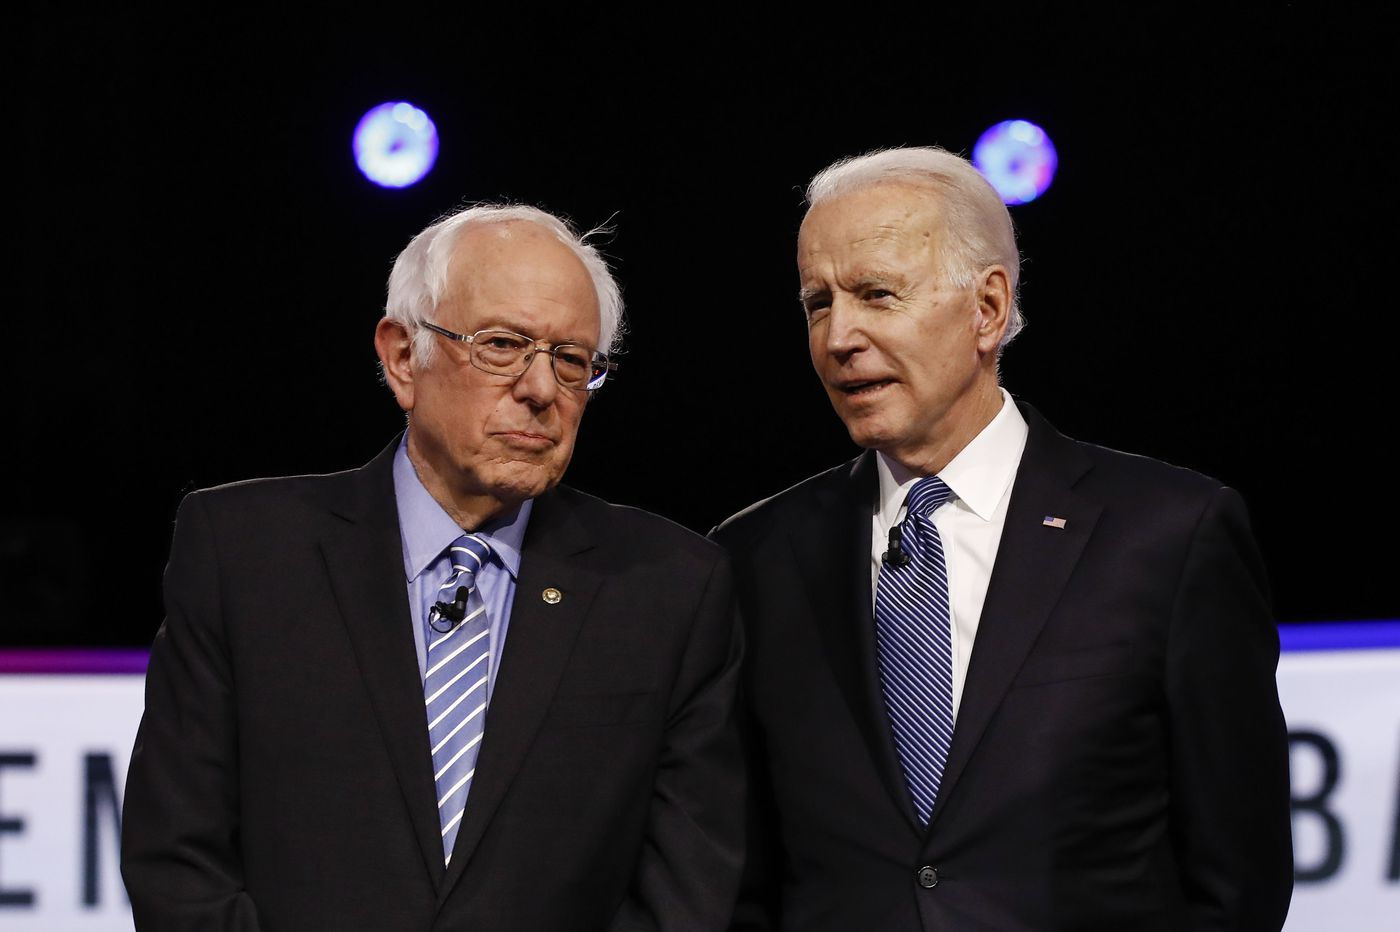 Biden-Sanders group serves familiar Democratic proposals